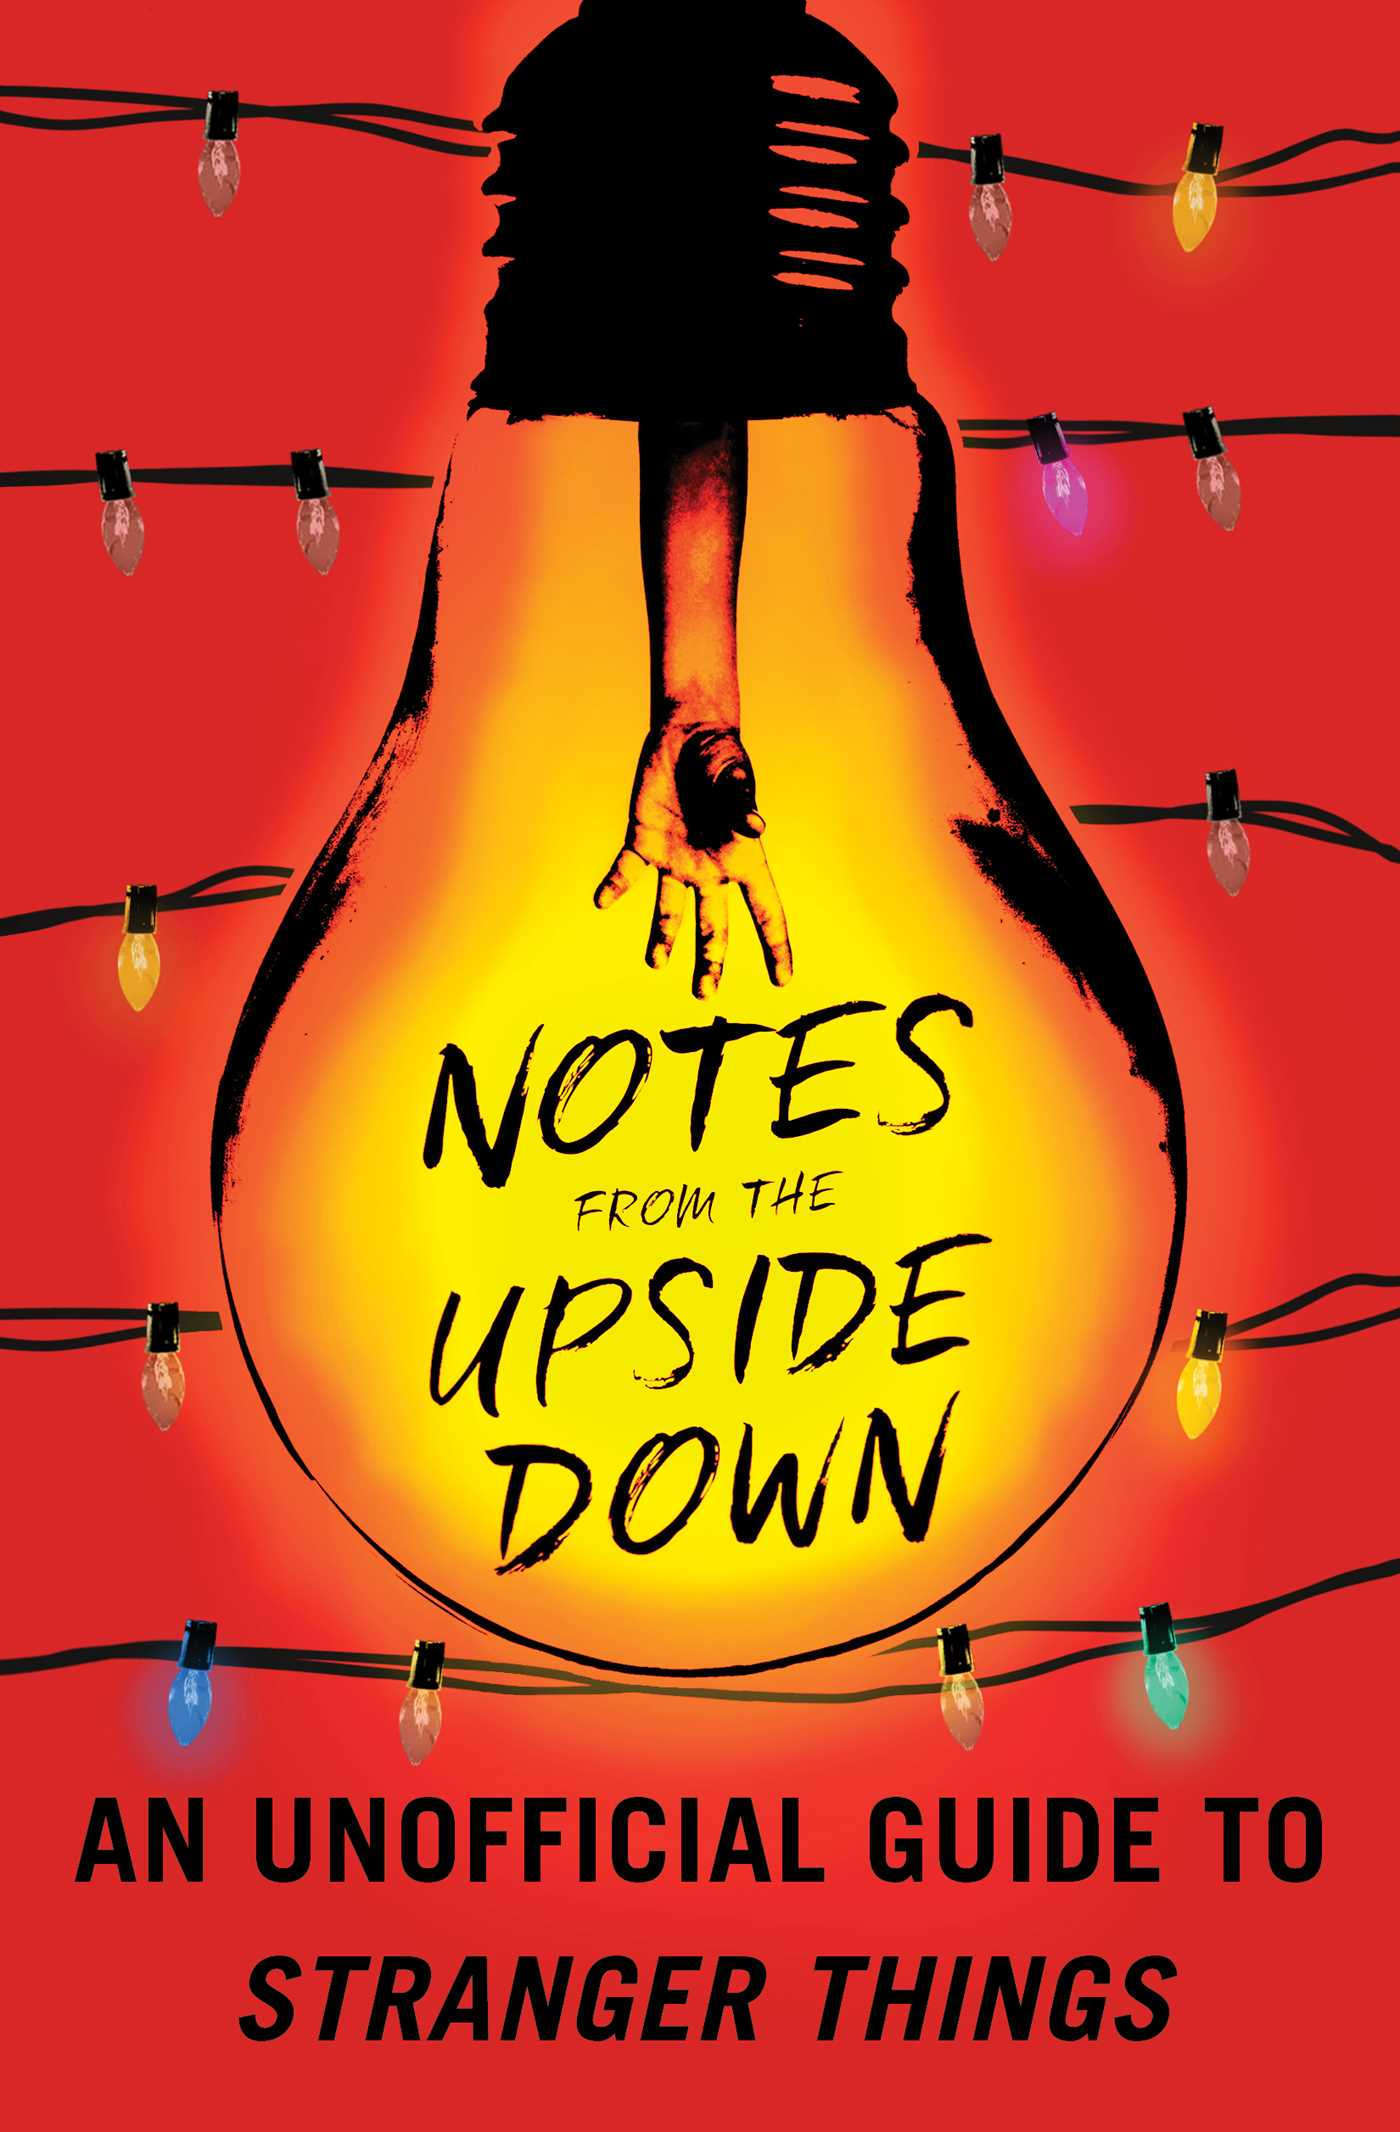 Notes from the upside down 9781501178030 hr